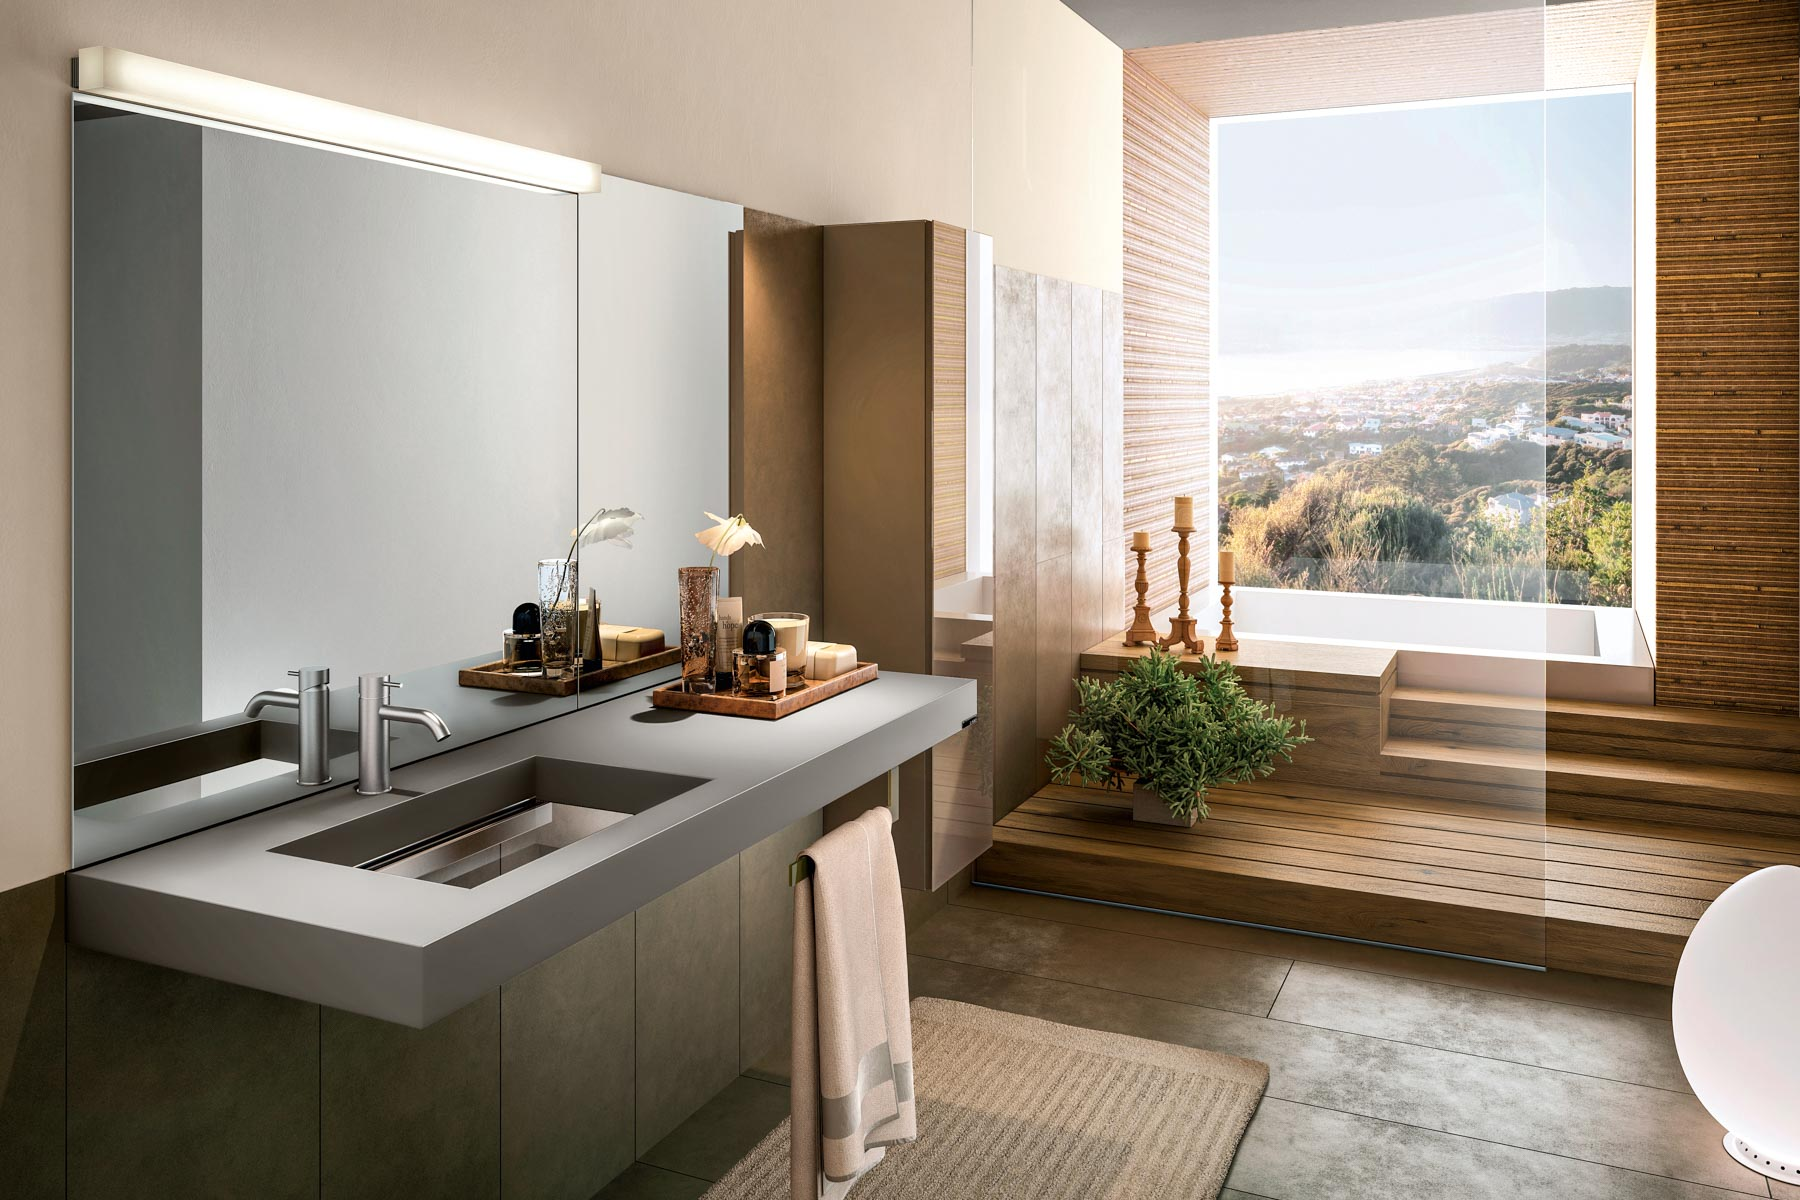 Bathroom - Depth washbasin